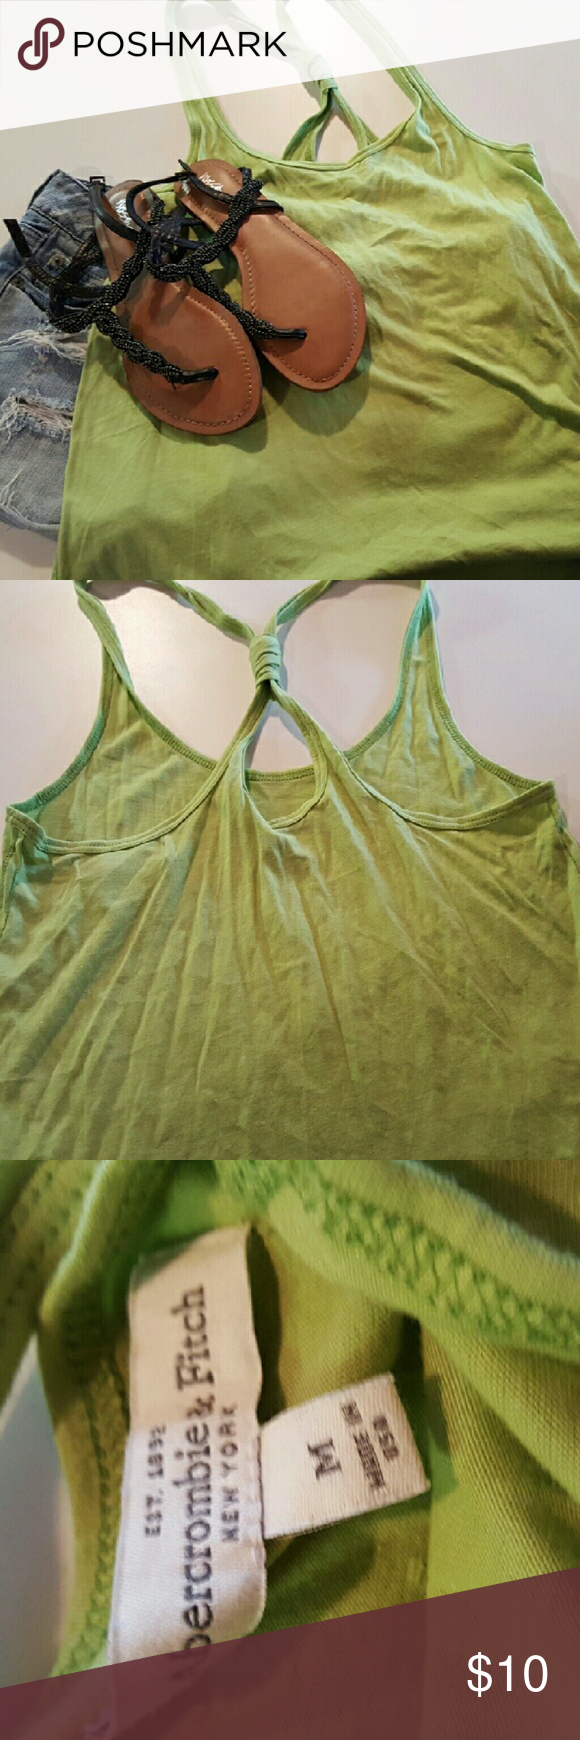 Green Abercrombie Tank Perfect condition, really cute. Just no longer my style Abercrombie & Fitch Tops Tank Tops